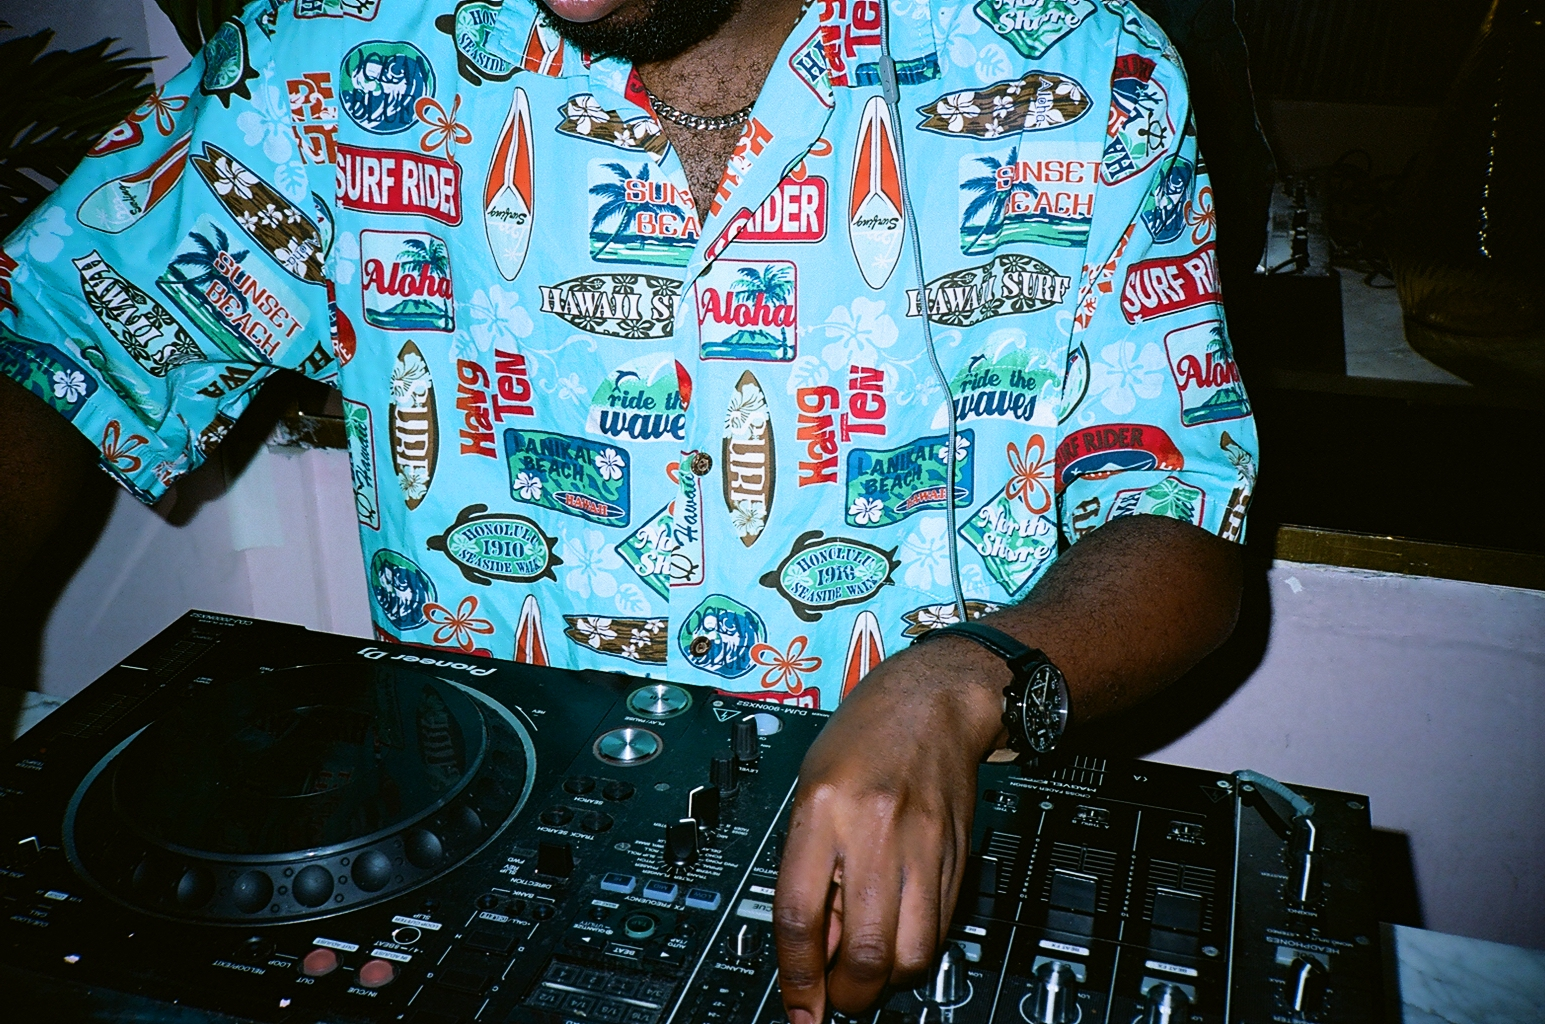 """"""" There is an art in djing and I feel like a lot of that got lost in the digital age. A lot of DJs are literally just pressing play and walking away from their set. """""""